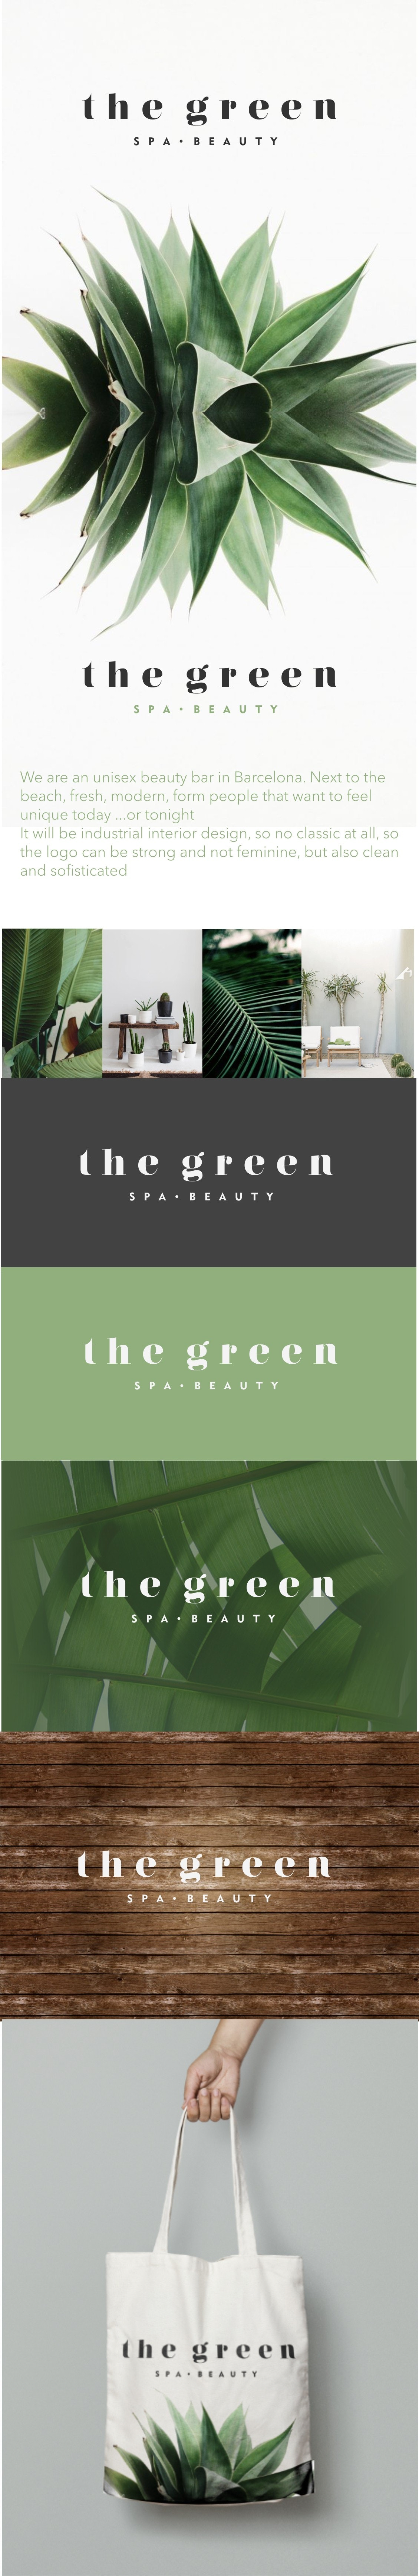 The Green Spa and Beauty logo